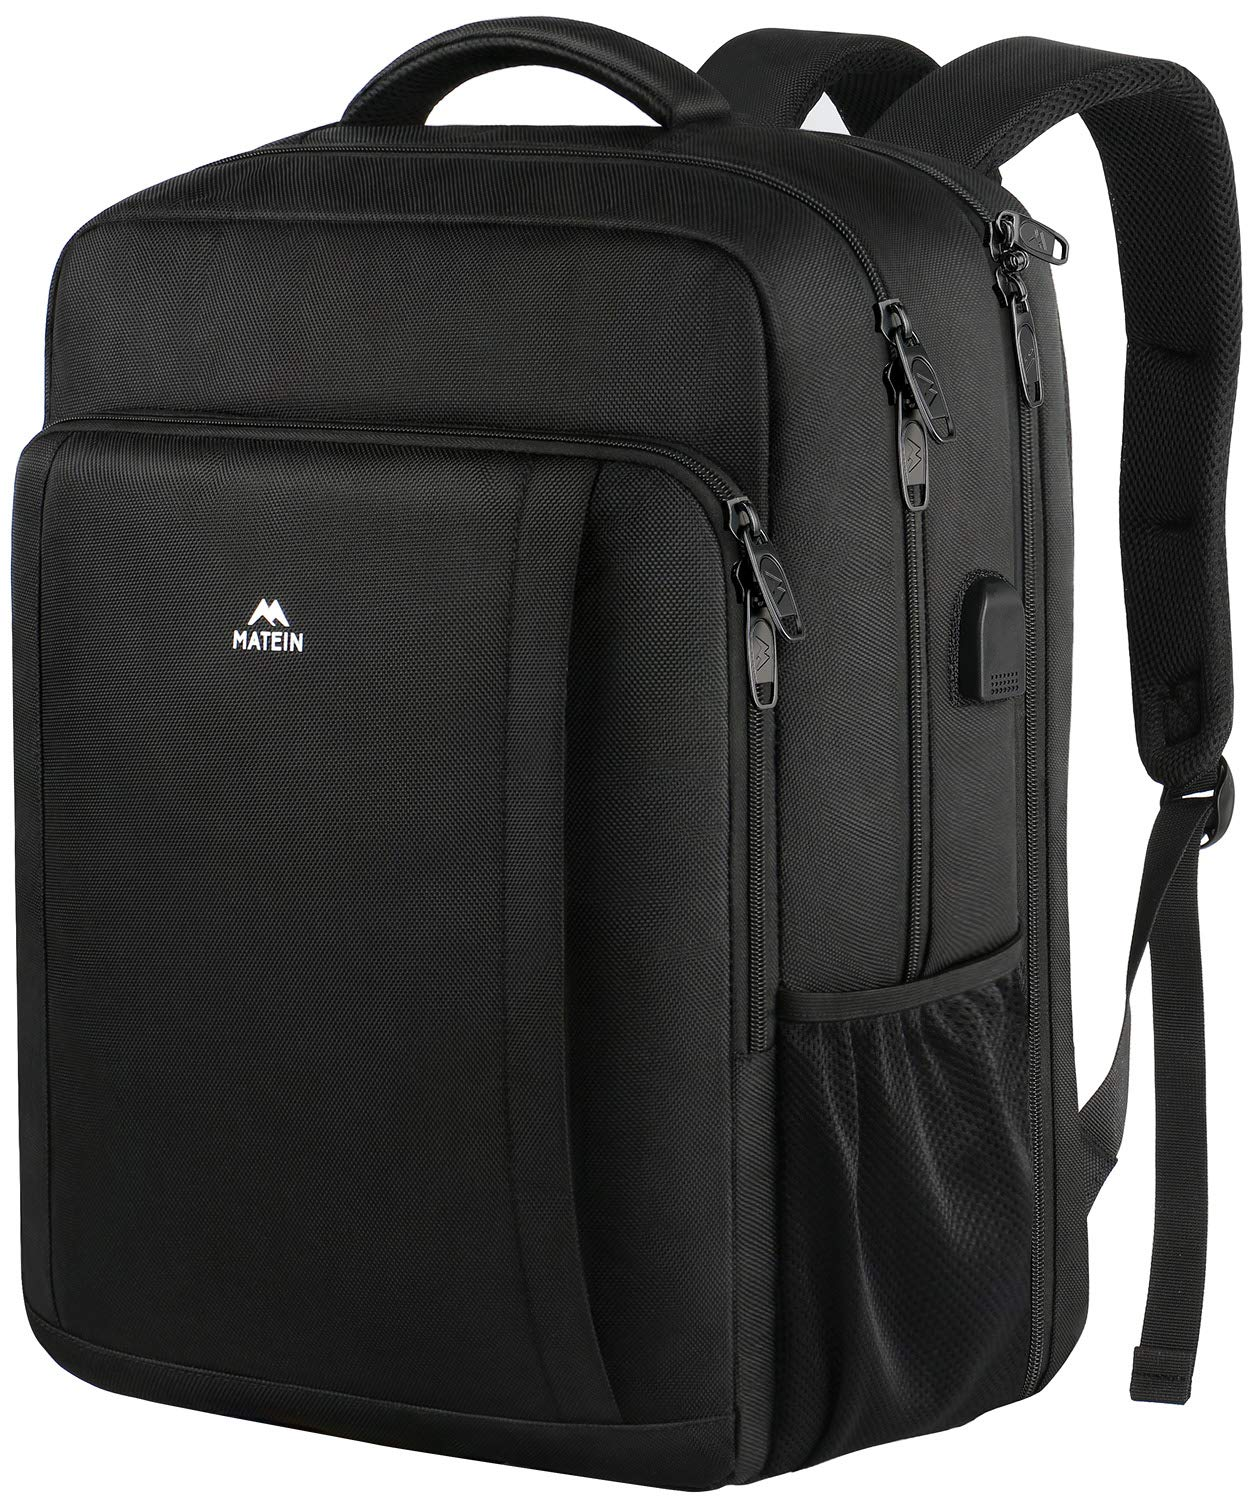 Matein Business Laptop Backpack, Extra Large Anti Theft TSA Friendly Travel Backpack With USB Charging Port, Durable Slim Computer Bag College School Bookbag for Women Men Fits 17 In Laptop,Black